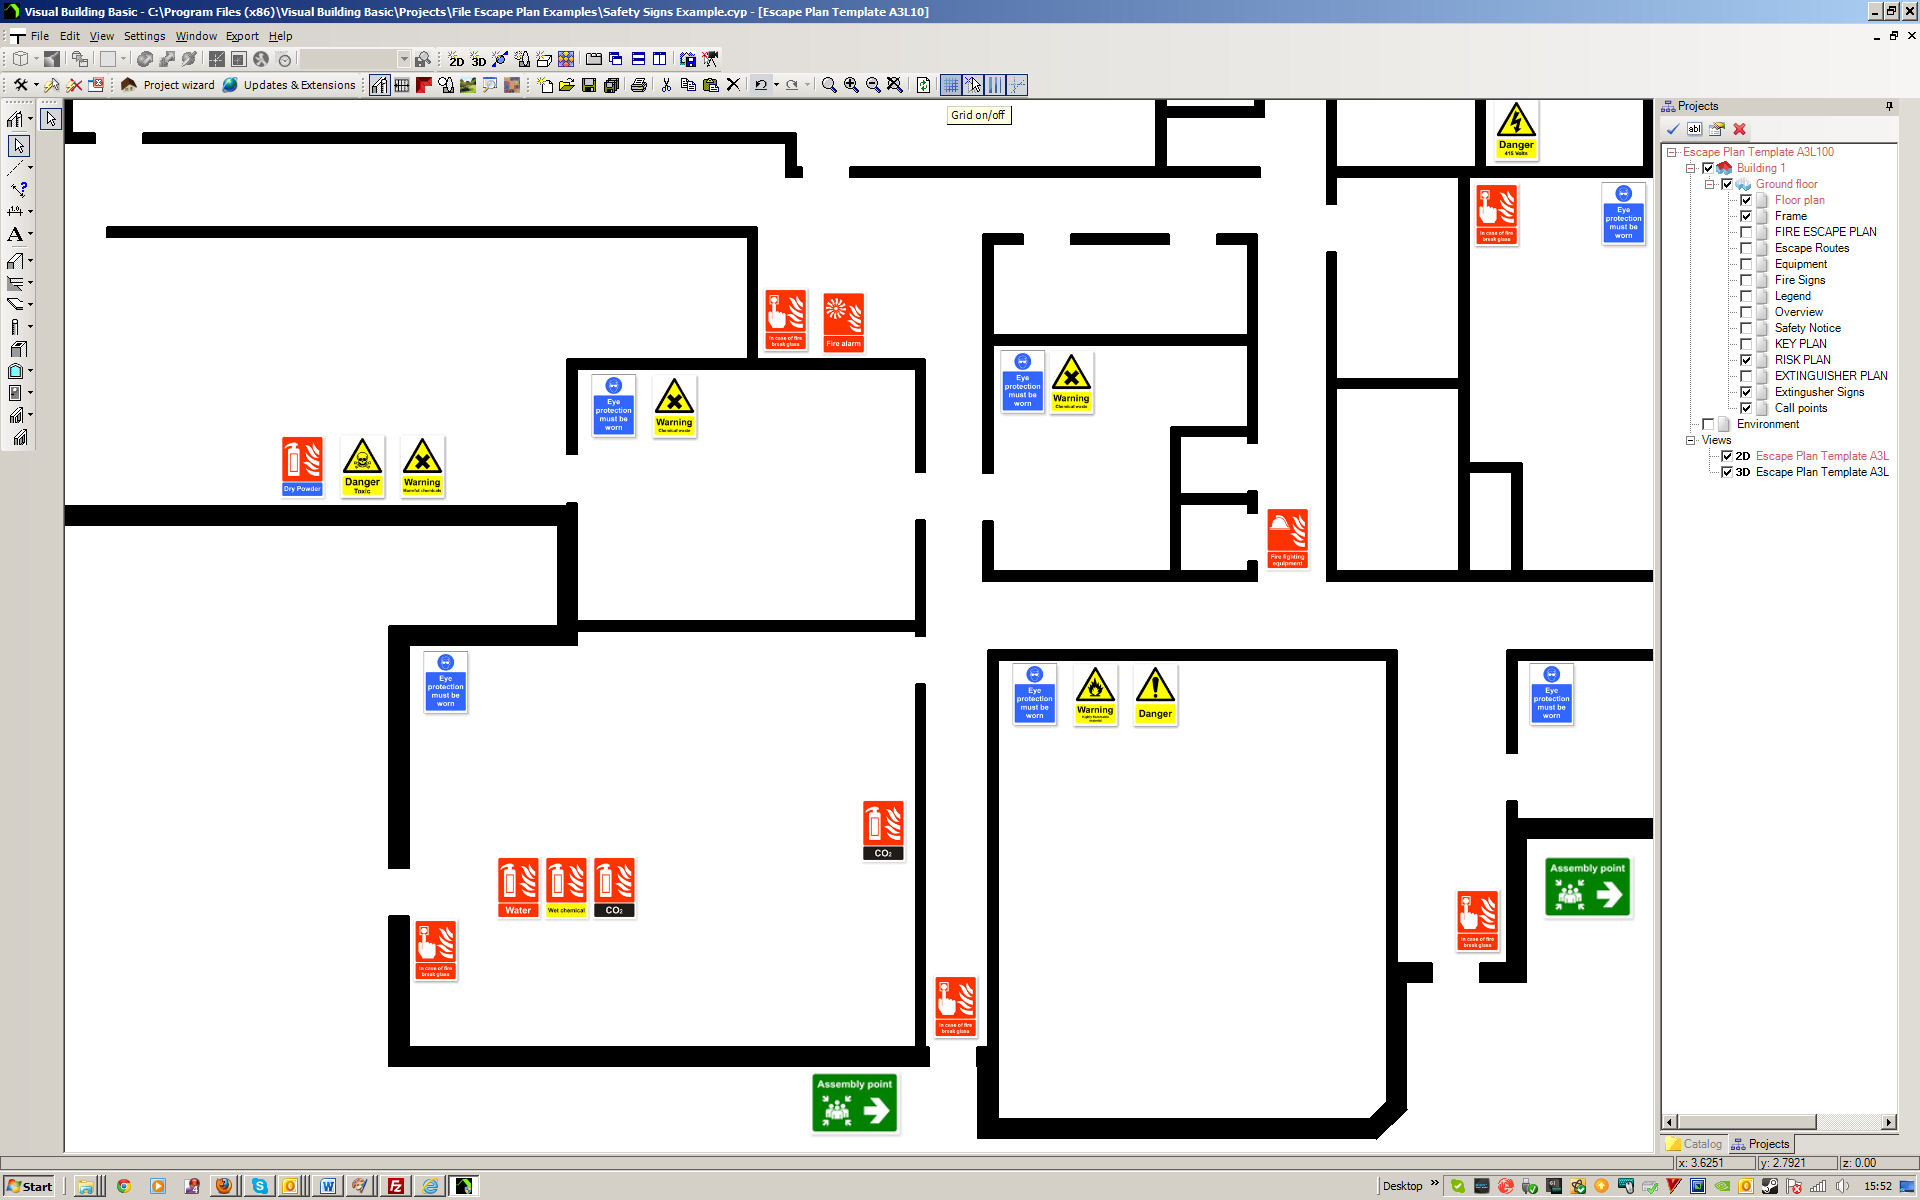 Floorplanner free tutorial de floorplanner en espaol for Floorplanner software